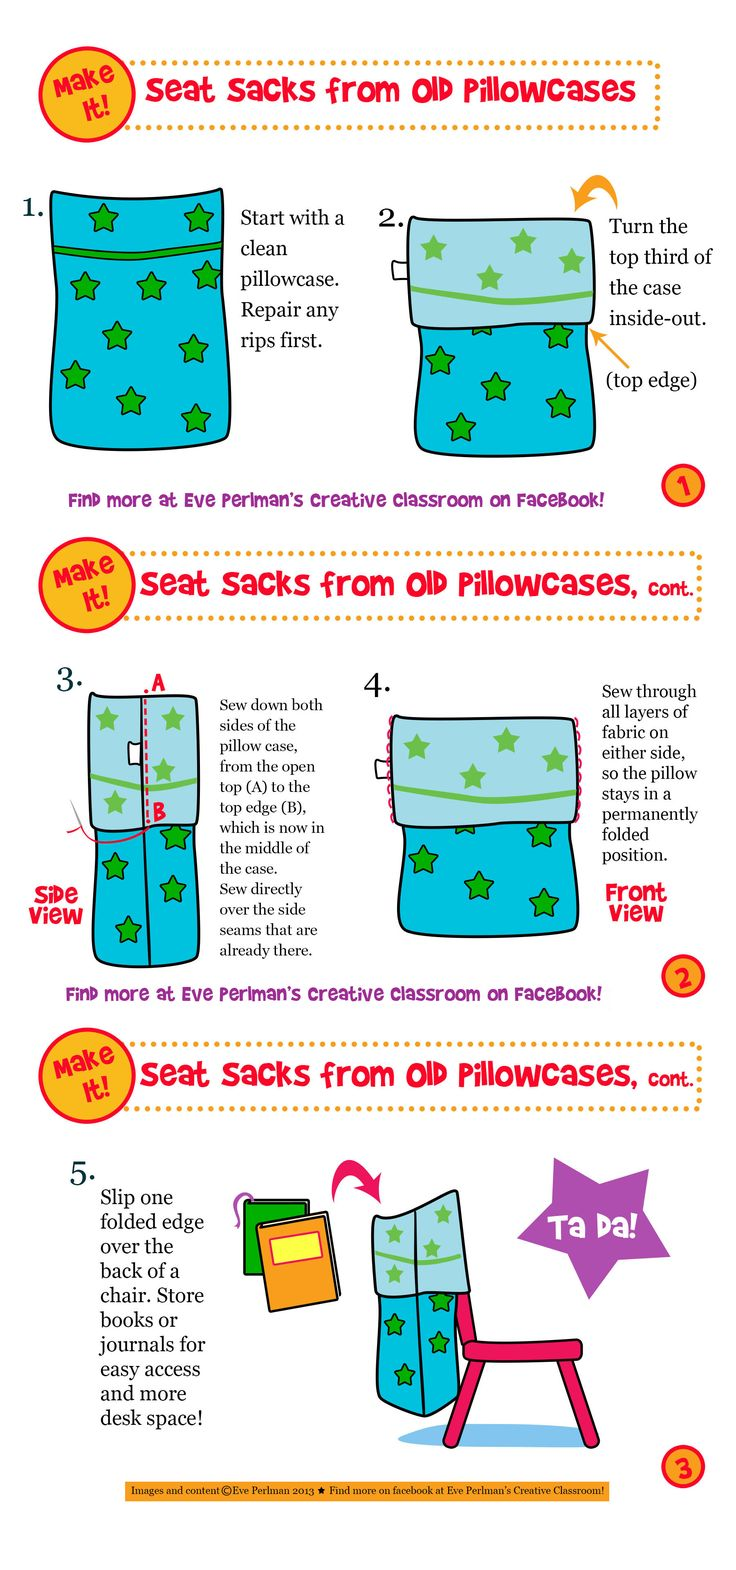 Don't spend a dime on seat sacks! Make them with four easy steps! Find more at Eve Perlman's Creative Classroom on Facebook! https://www.facebook.com/eve.perlman.1